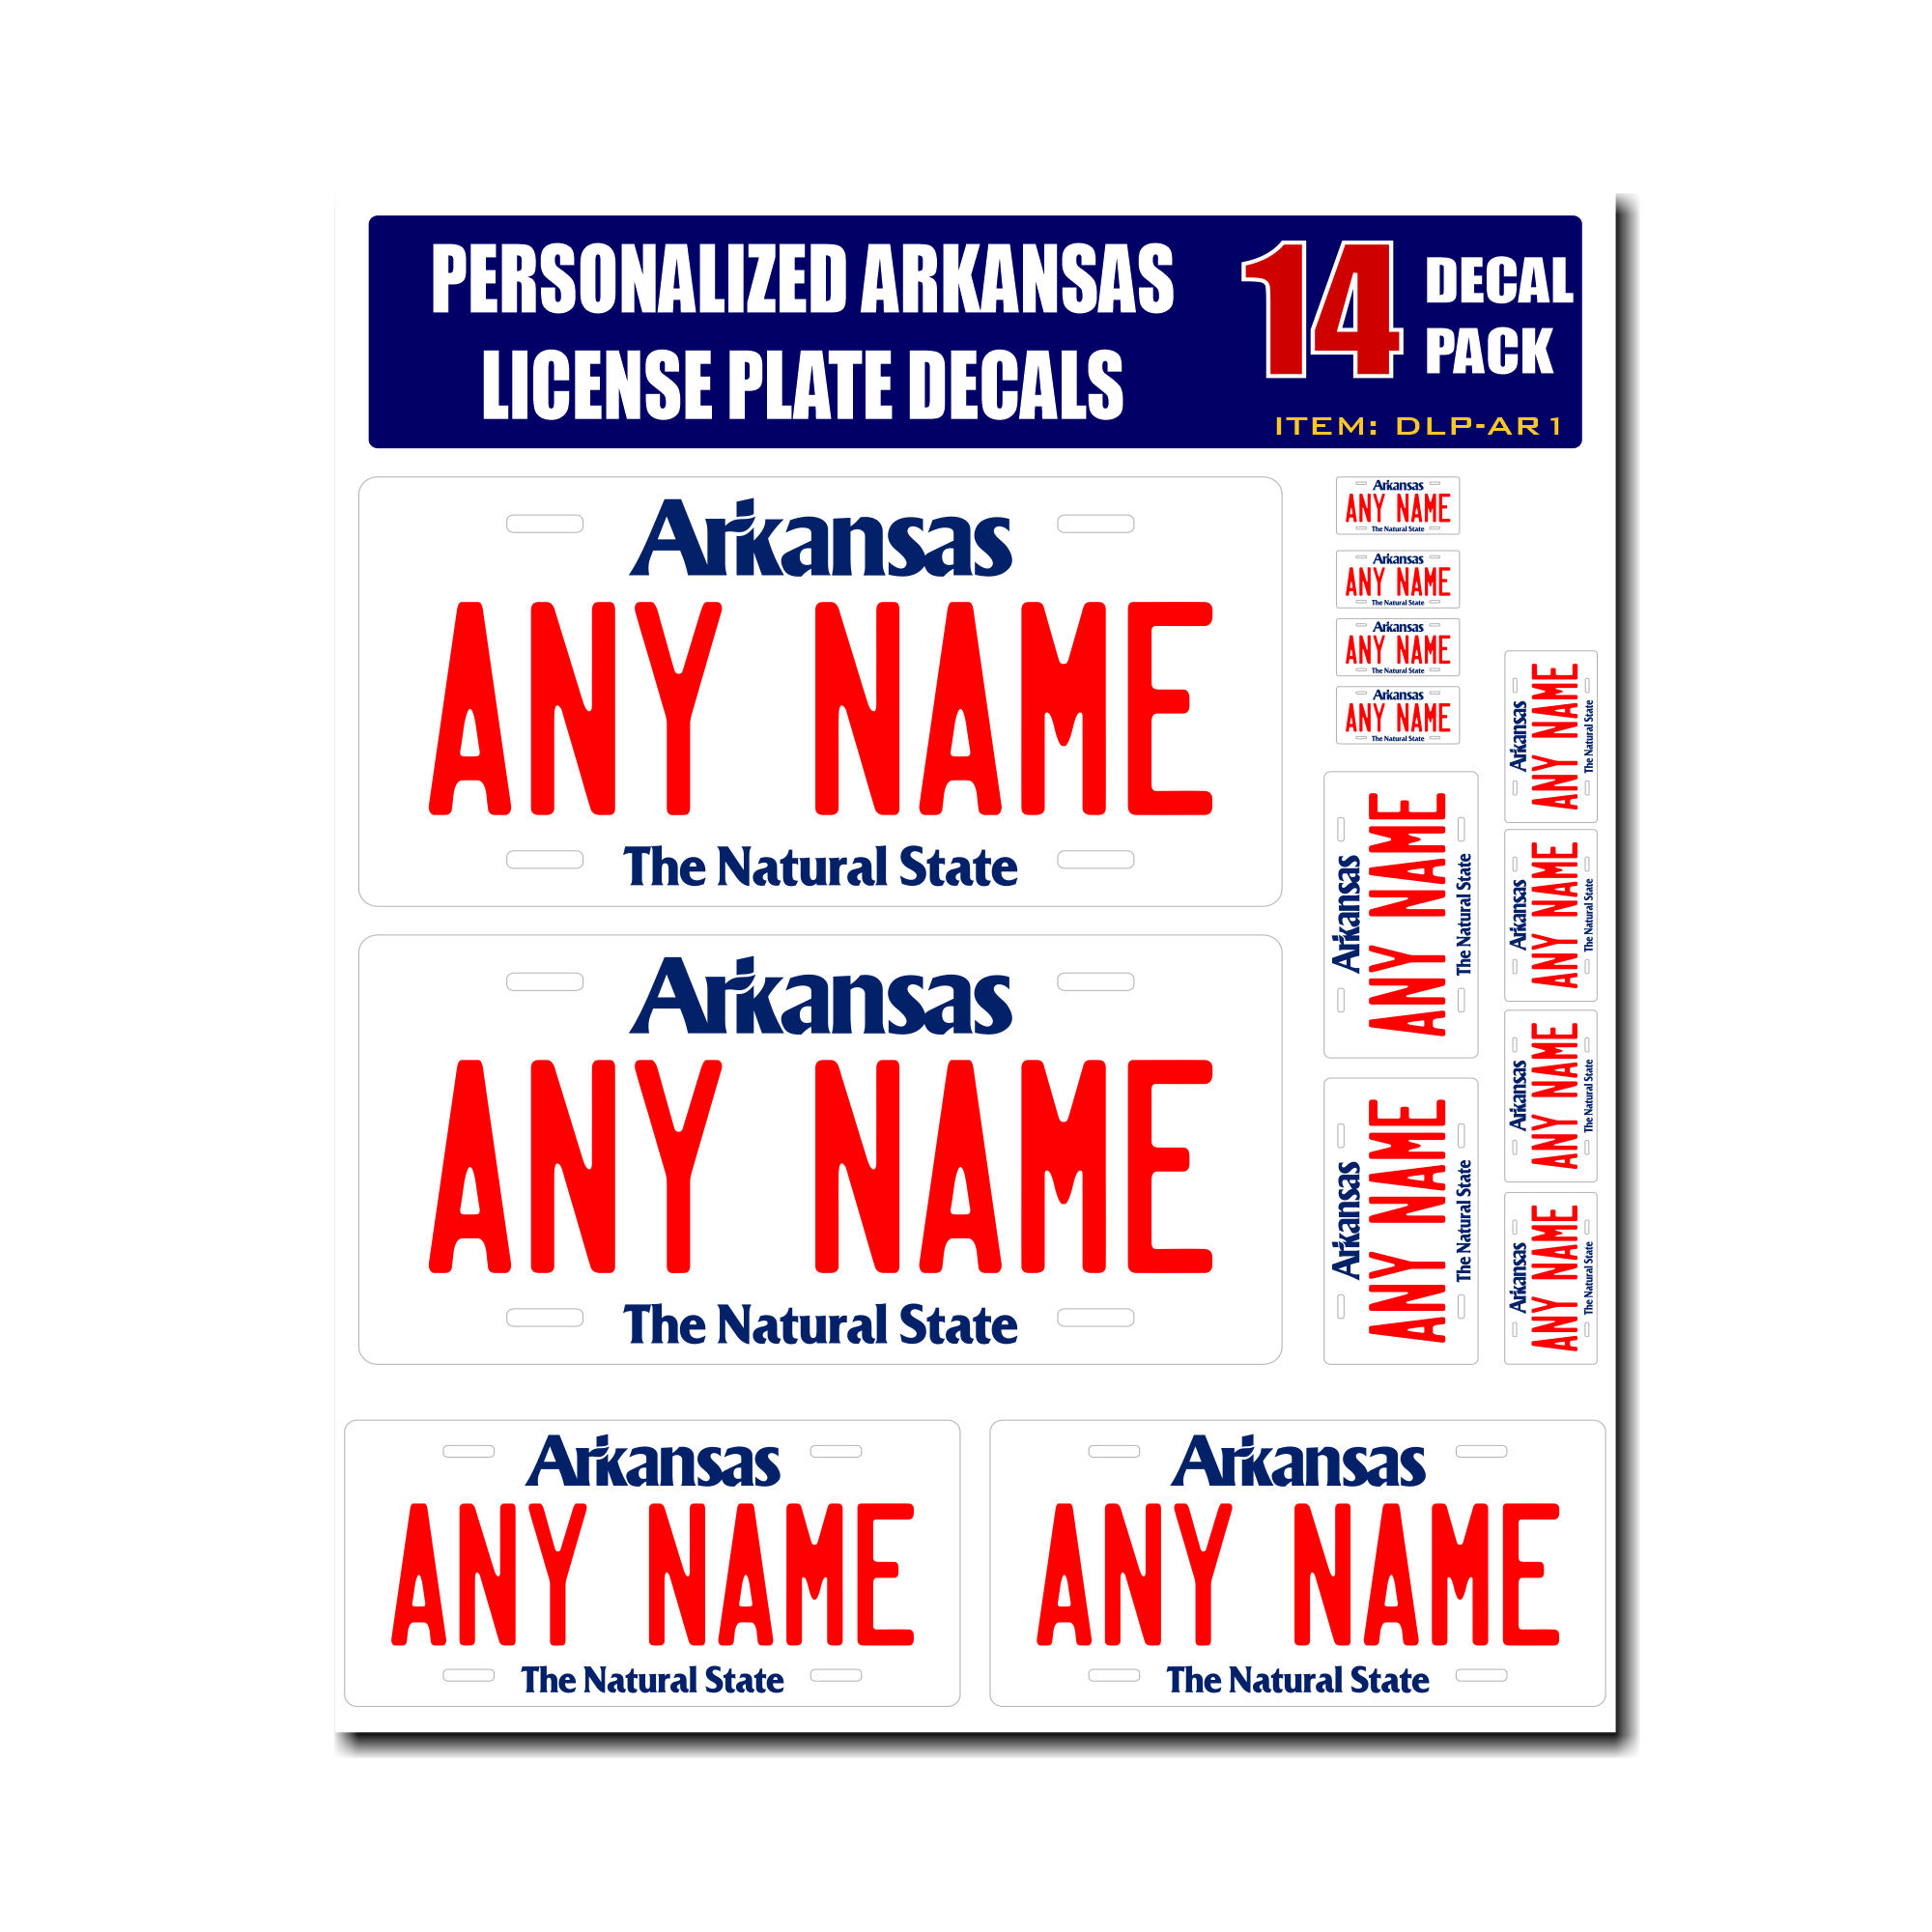 Personalized Arkansas License Plate Decals - Stickers Version 1